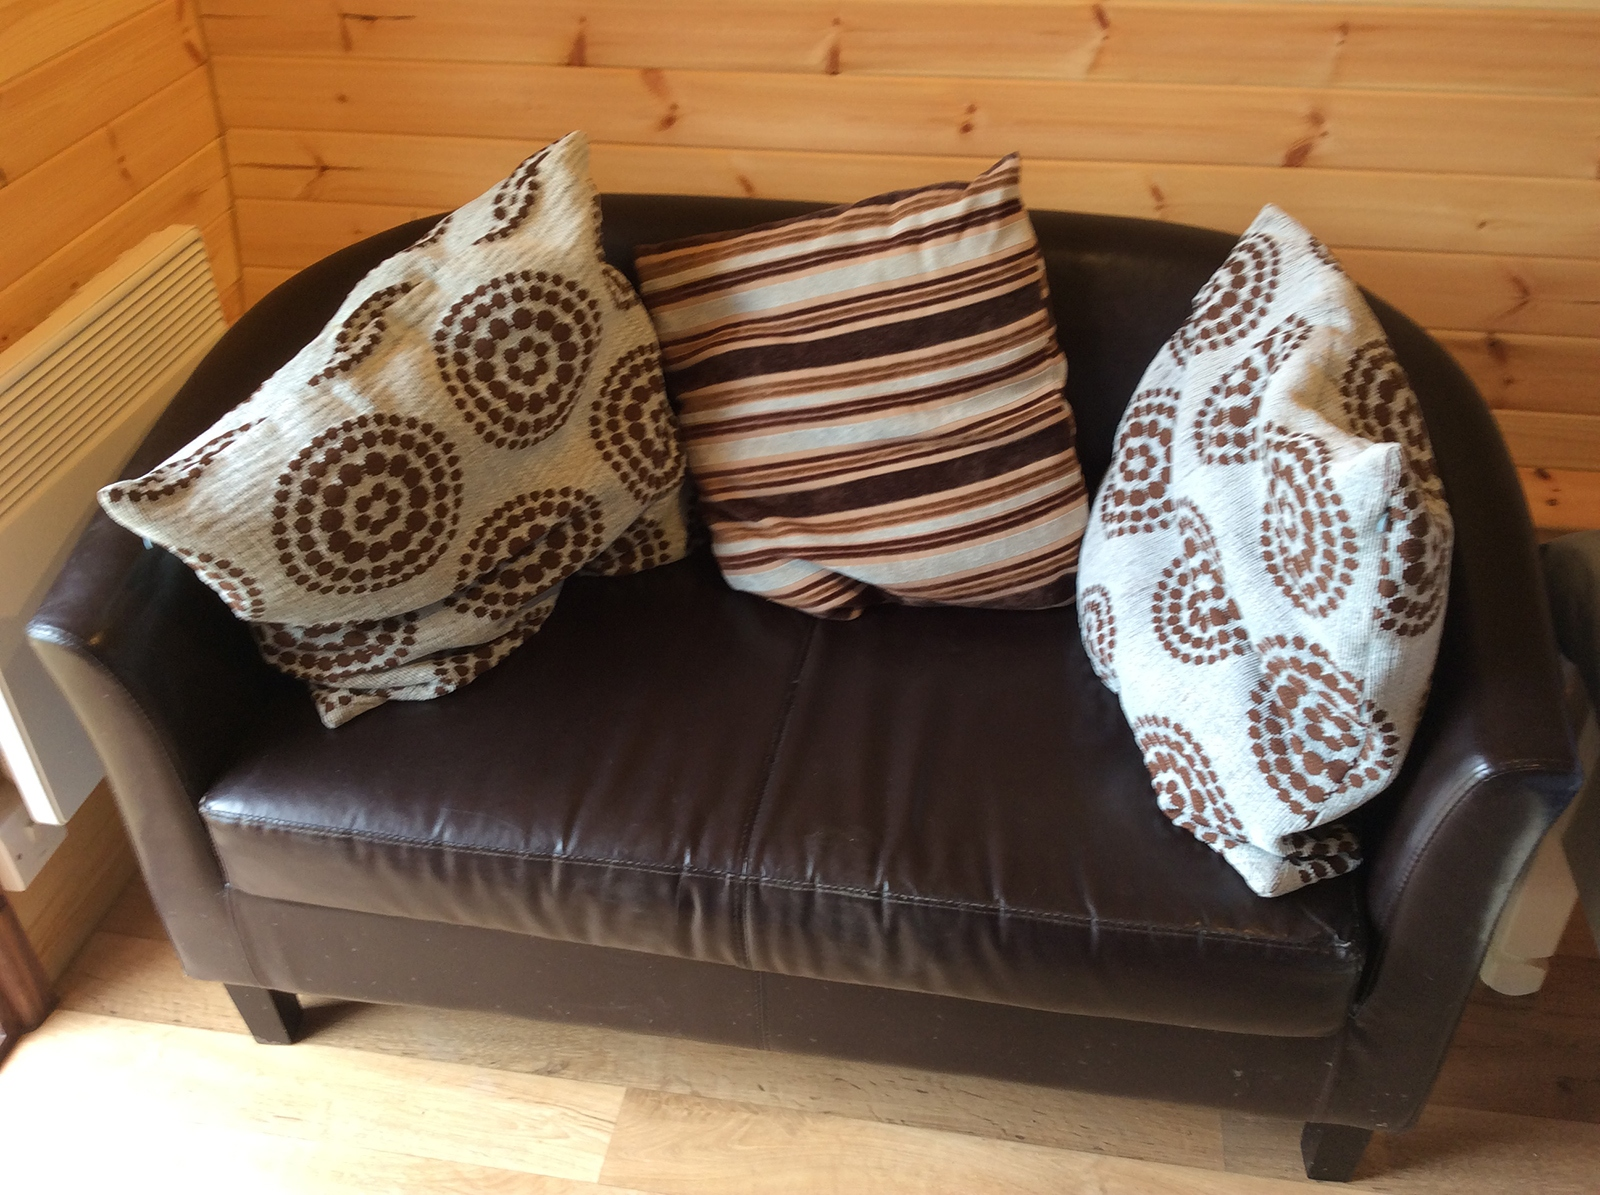 Sofa in Posh Glamping Pod Near Ellesmere in Shropshire